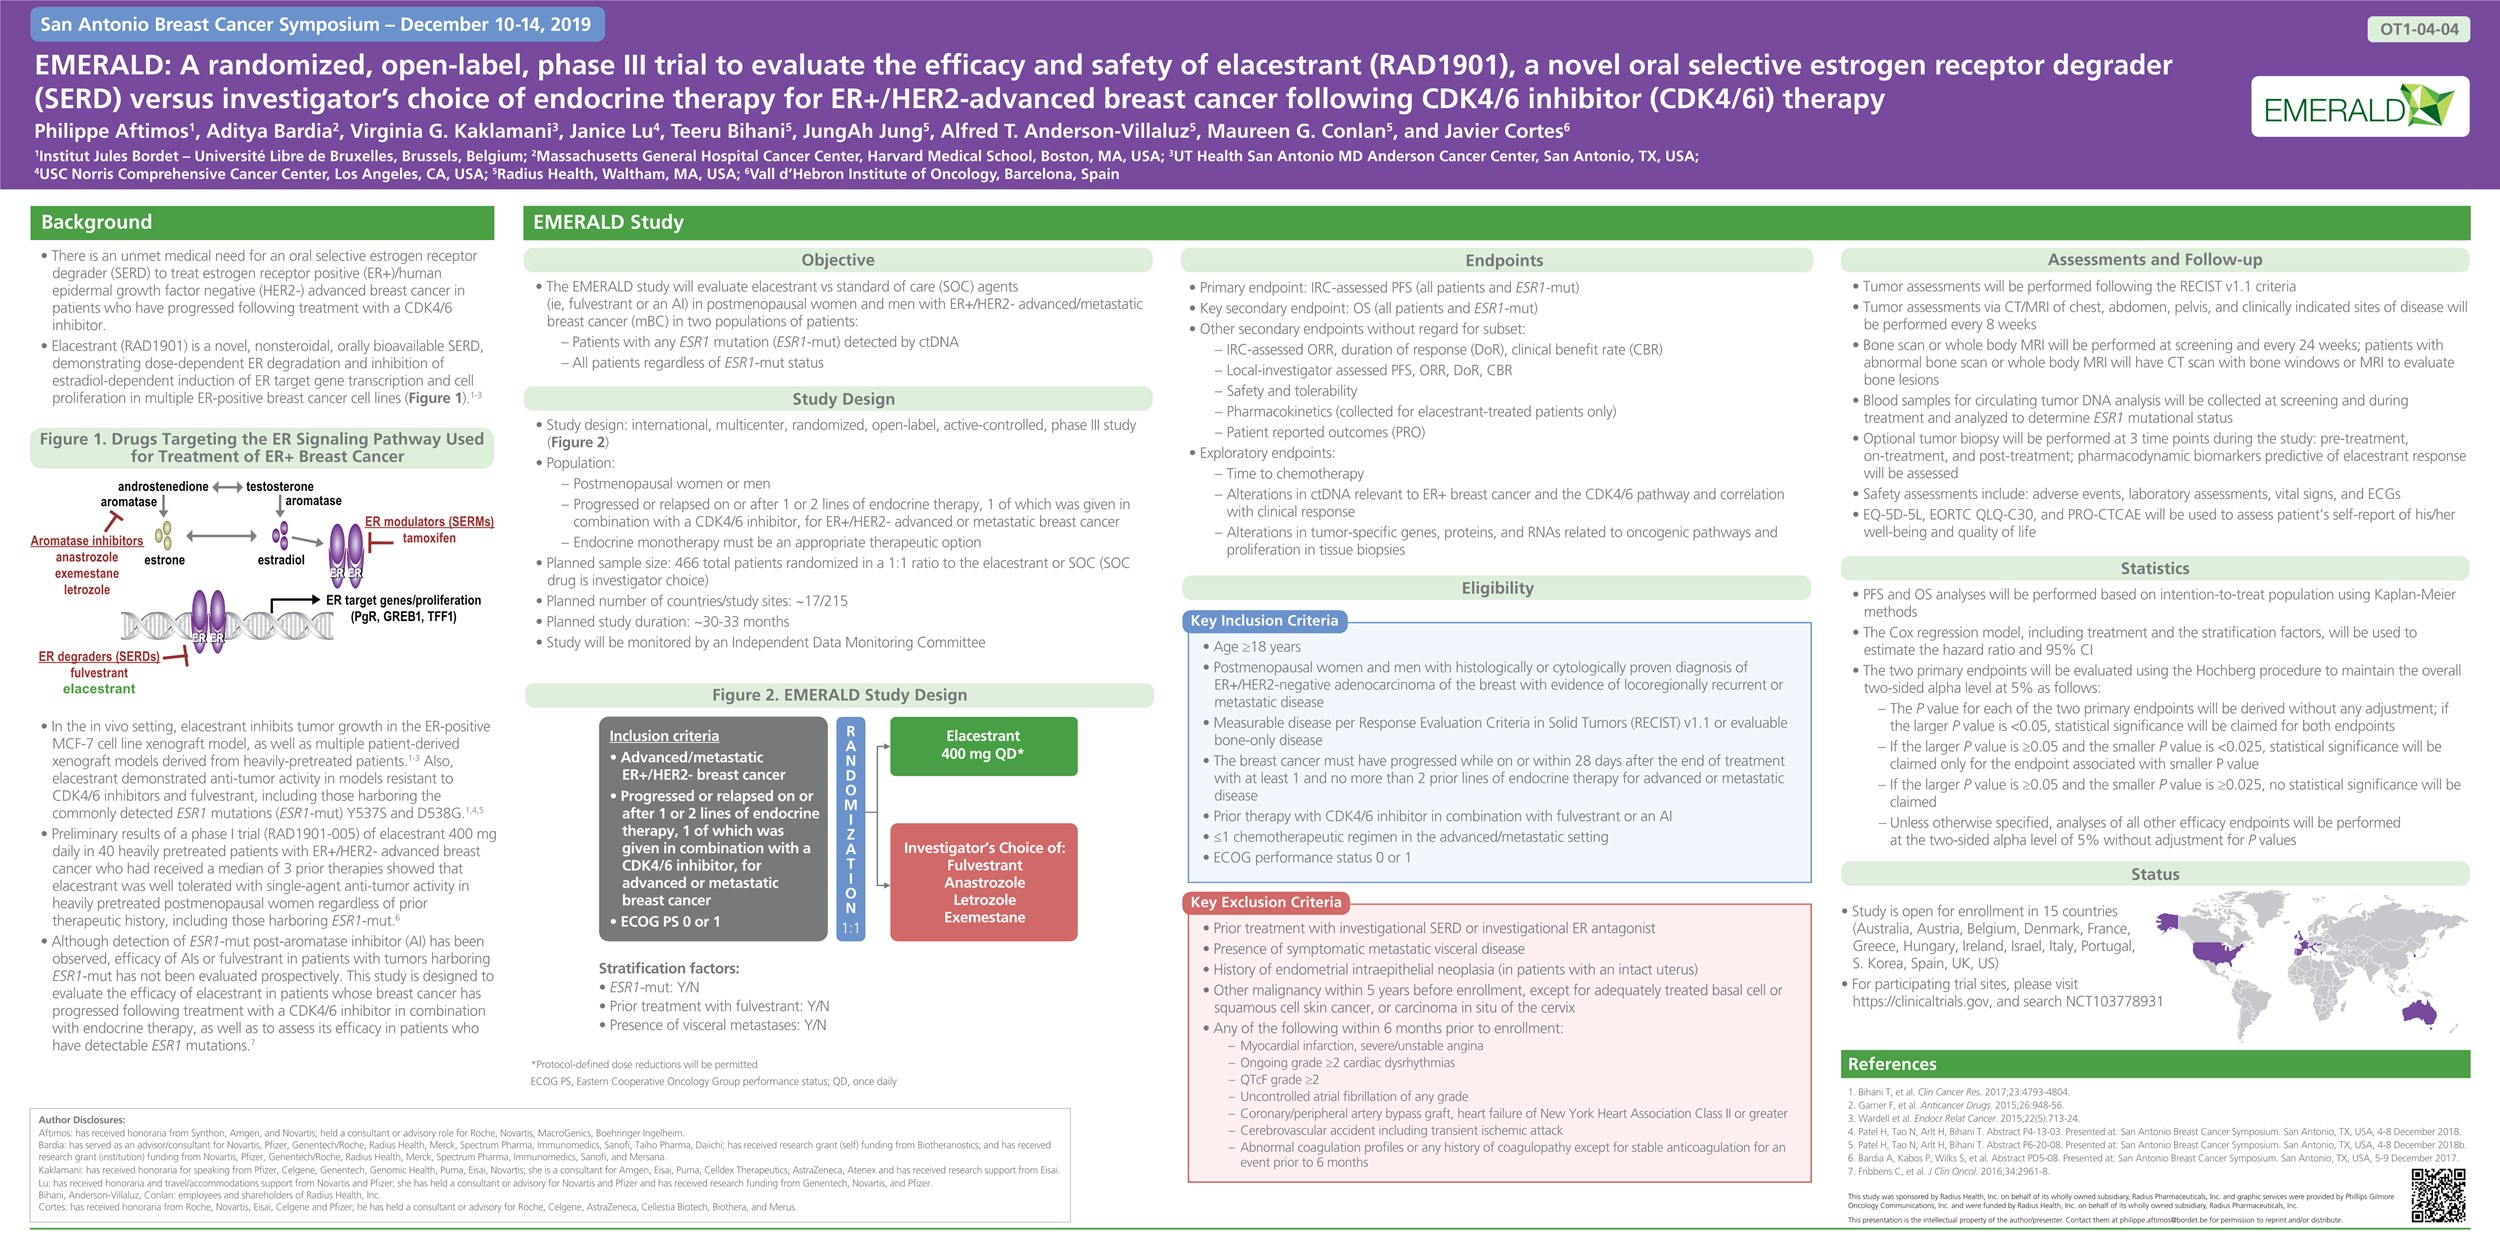 Emerald: A randomized, open-label, phase 3 trial to evaluate the efficacy and safety of elacestrant (RAD1901), a novel oral selective estrogen receptor degrader (SERD), vs investigator's choice of endocrine therapy for ER+/HER2- advanced breast cancer following CDK4/6 inhibitor therapy